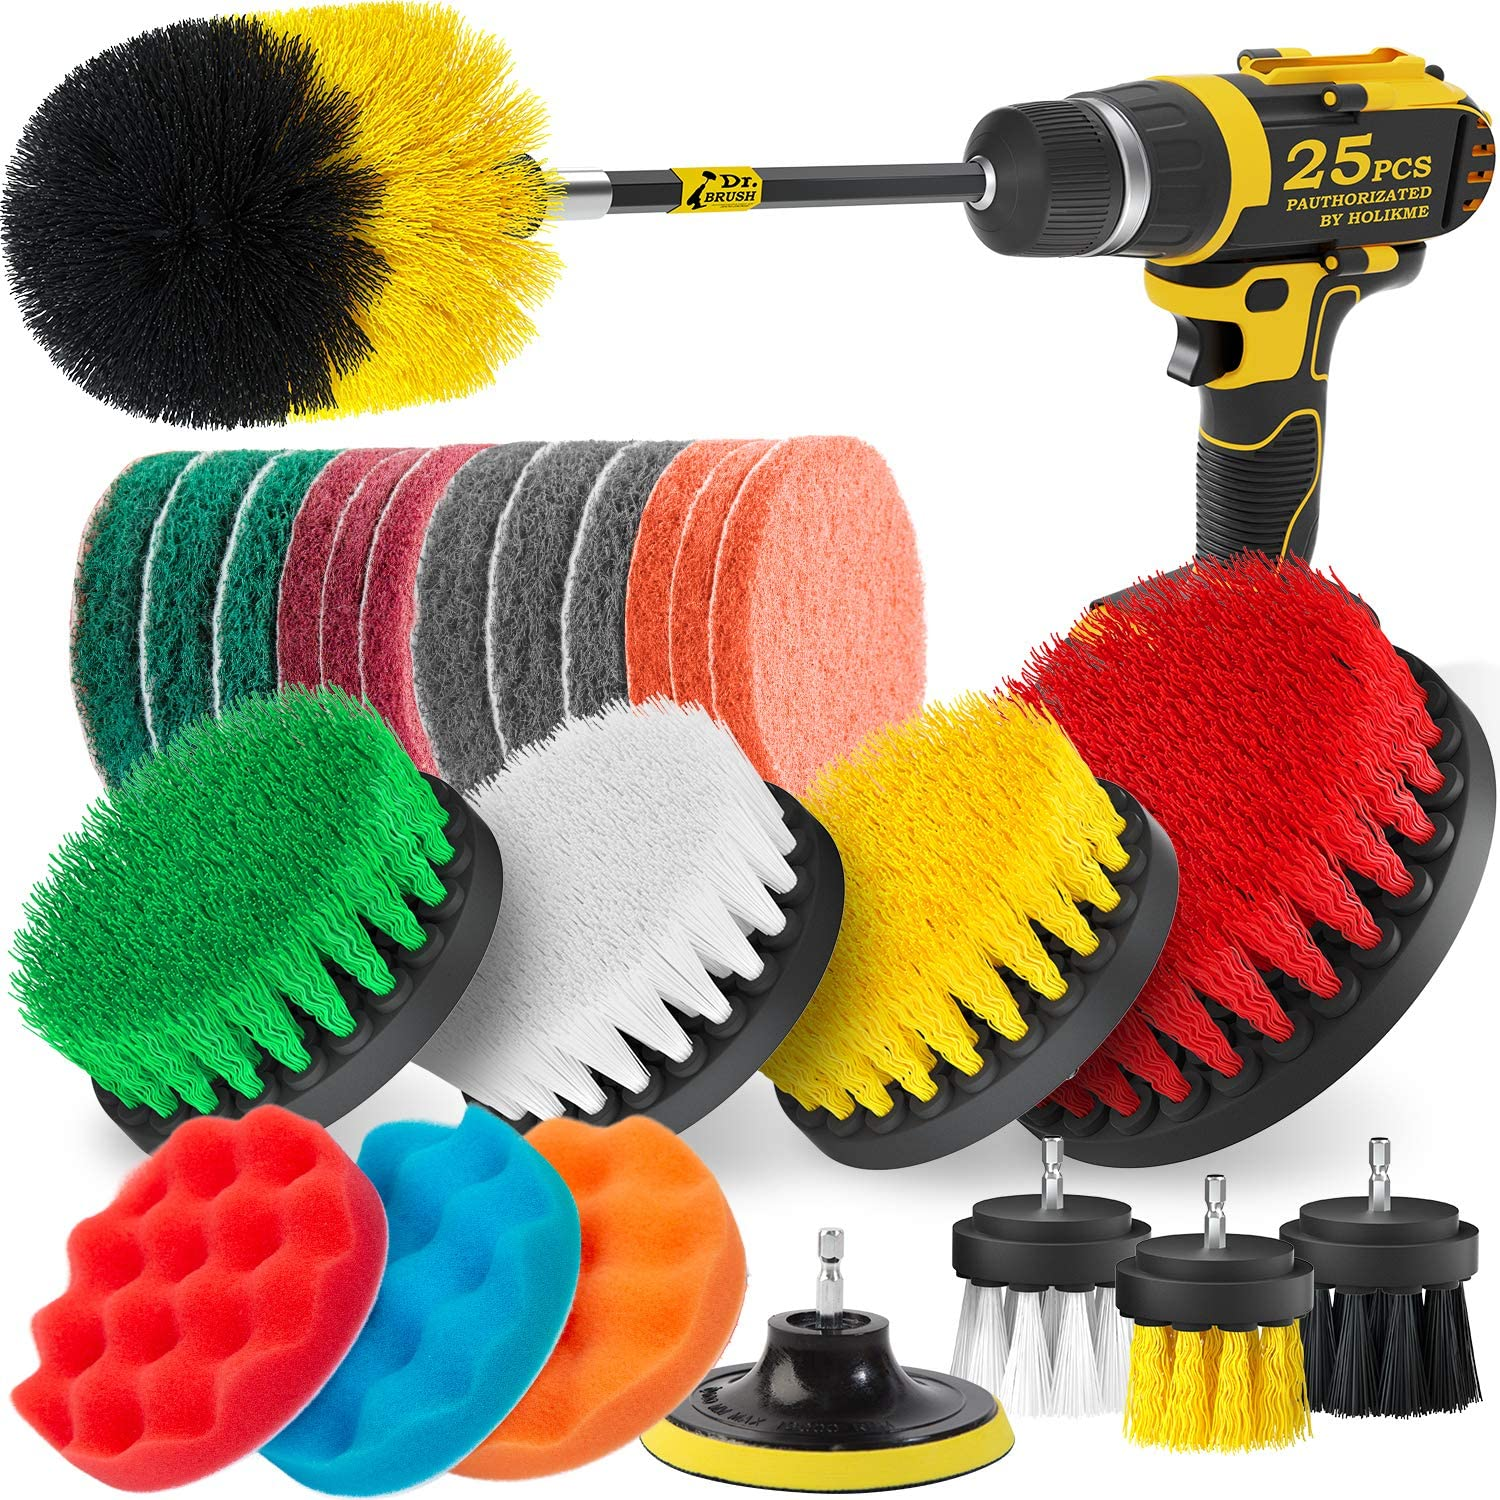 Holikme 25Piece Drill Brush Attachments Set,Scrub Pads & Sponge, Power Scrubber Brush with Extend Long Attachment All Purpose Clean for Grout, Tiles, Sinks, Bathtub, Bathroom, Kitchen : Health & Household